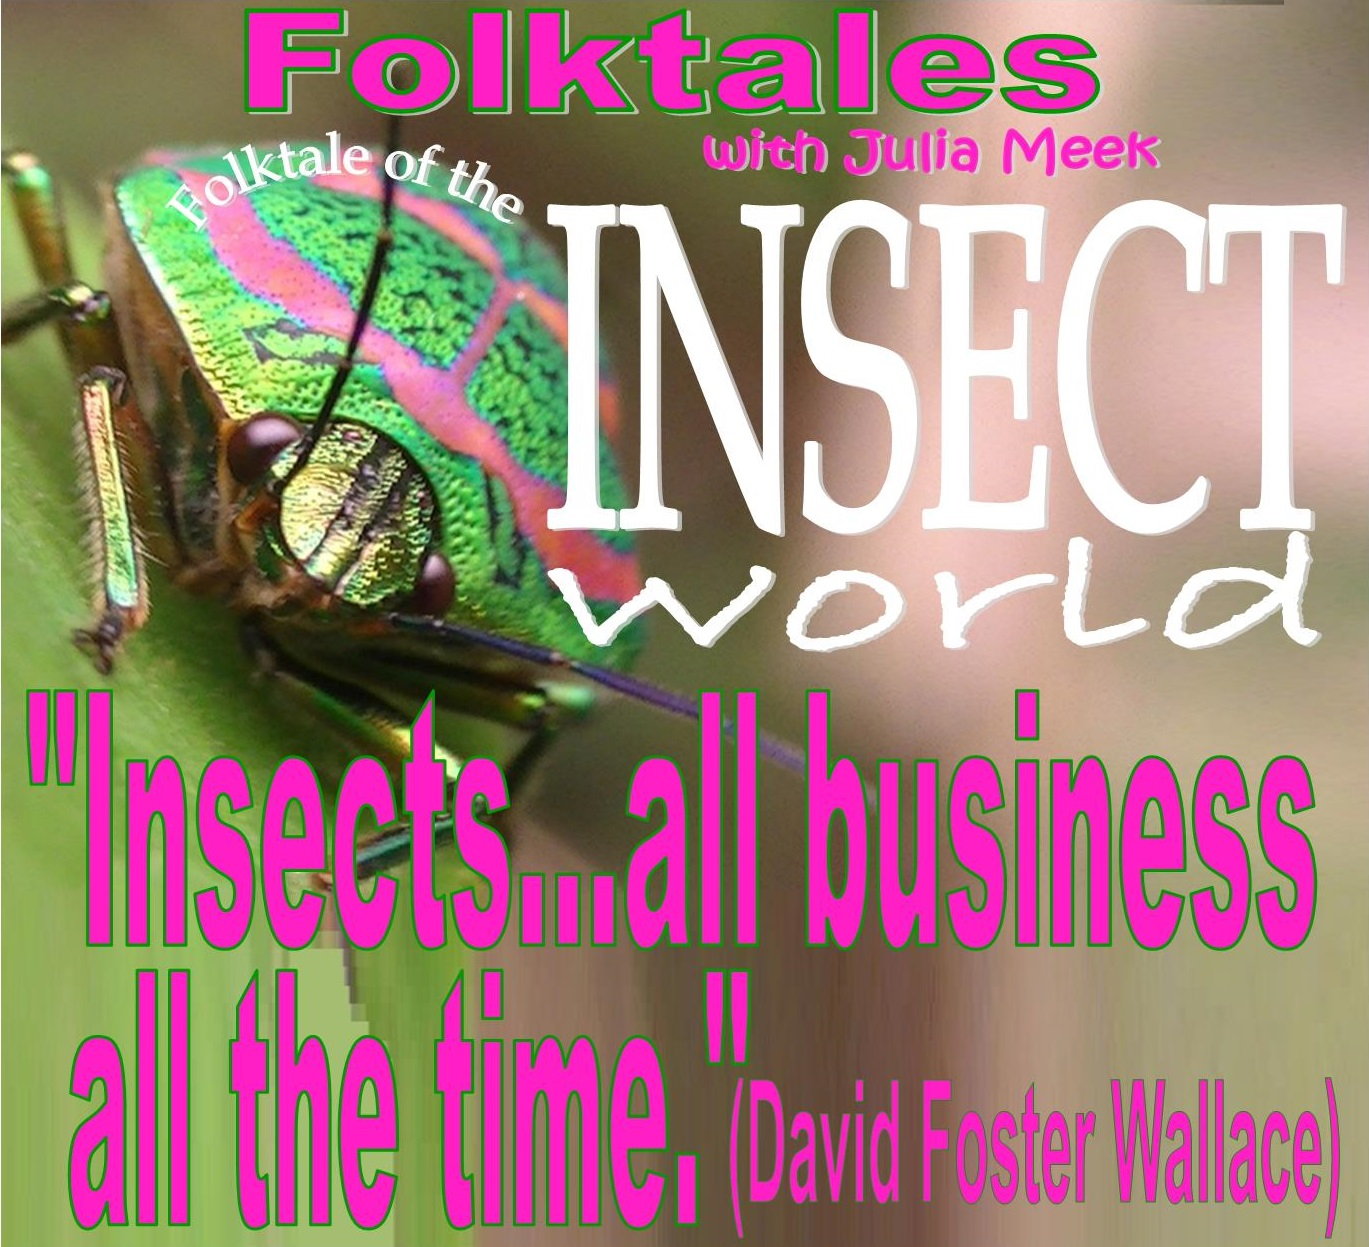 Caption: Folktale of The Insect World, Credit: Julia Meek